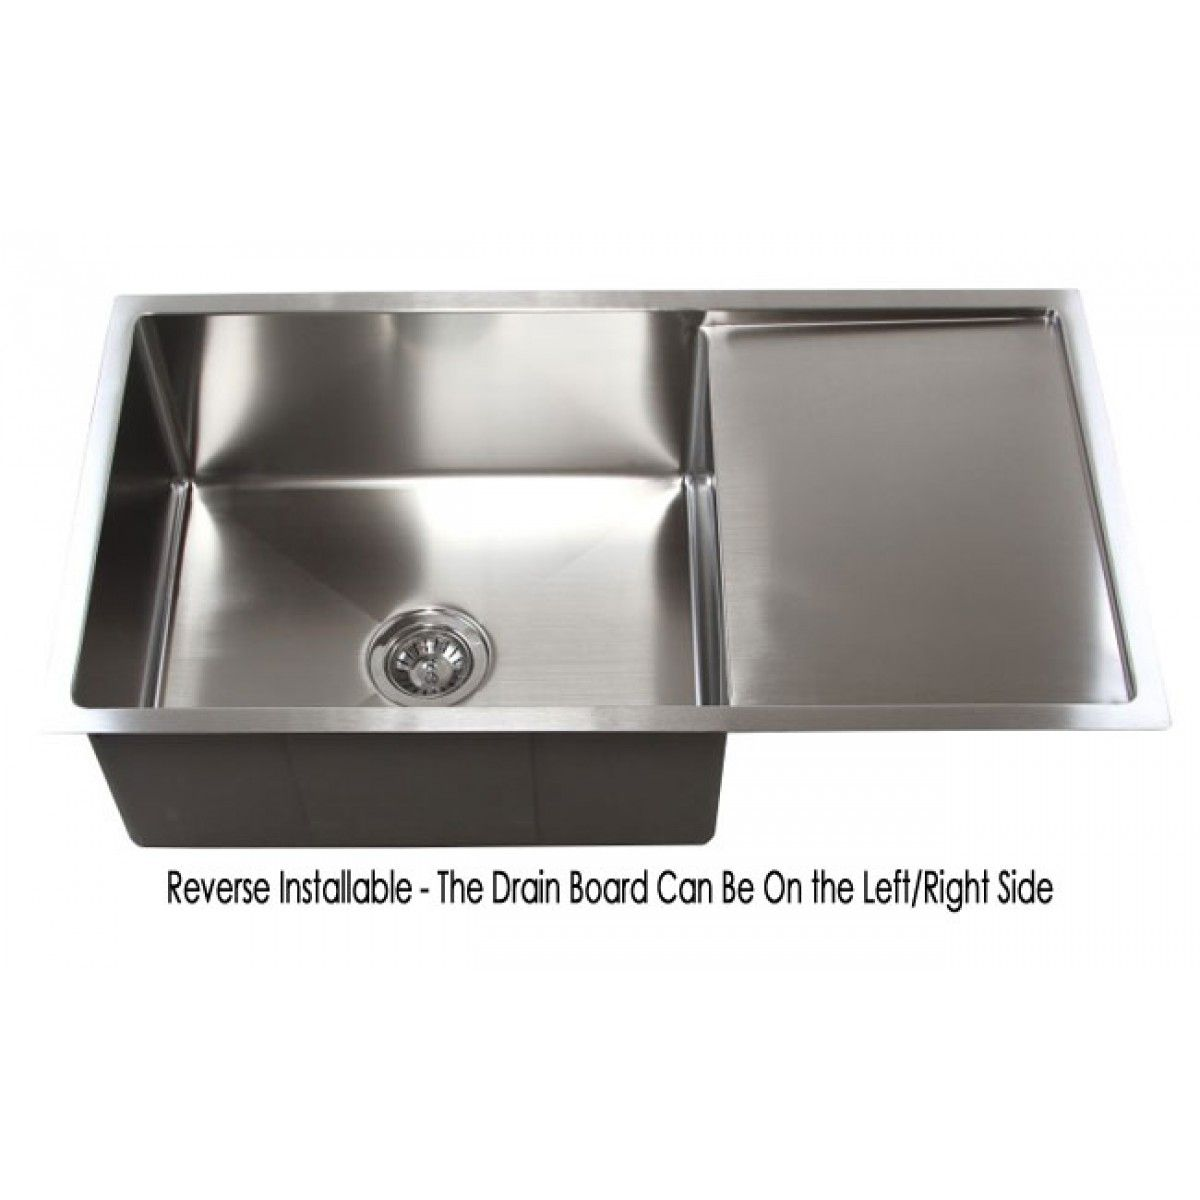 36 Inch Stainless Steel Undermount Single Bowl Kitchen Sink With